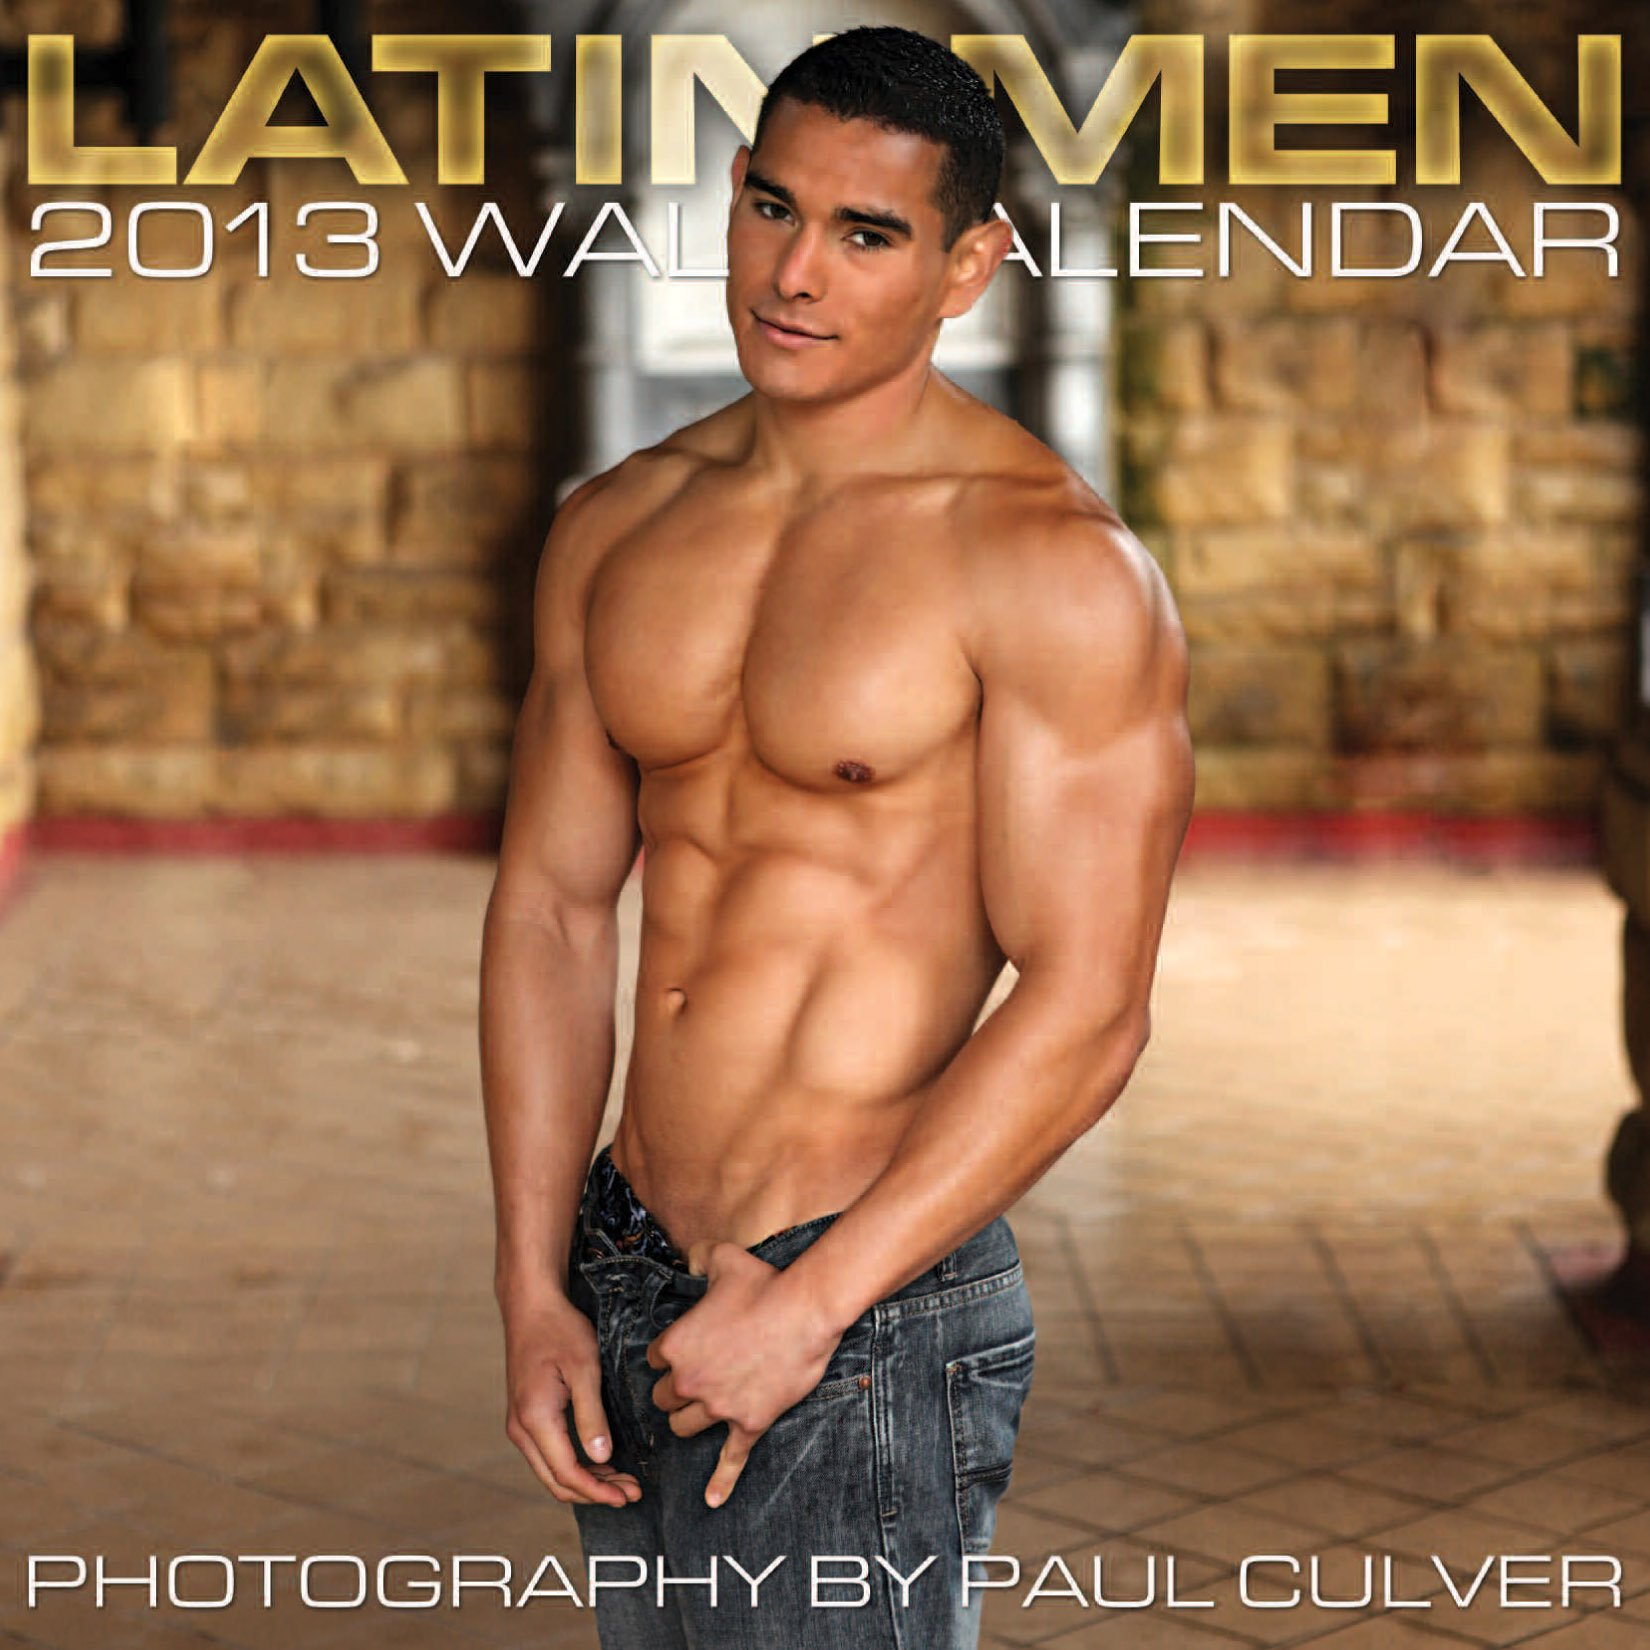 Hot latino men tumblr